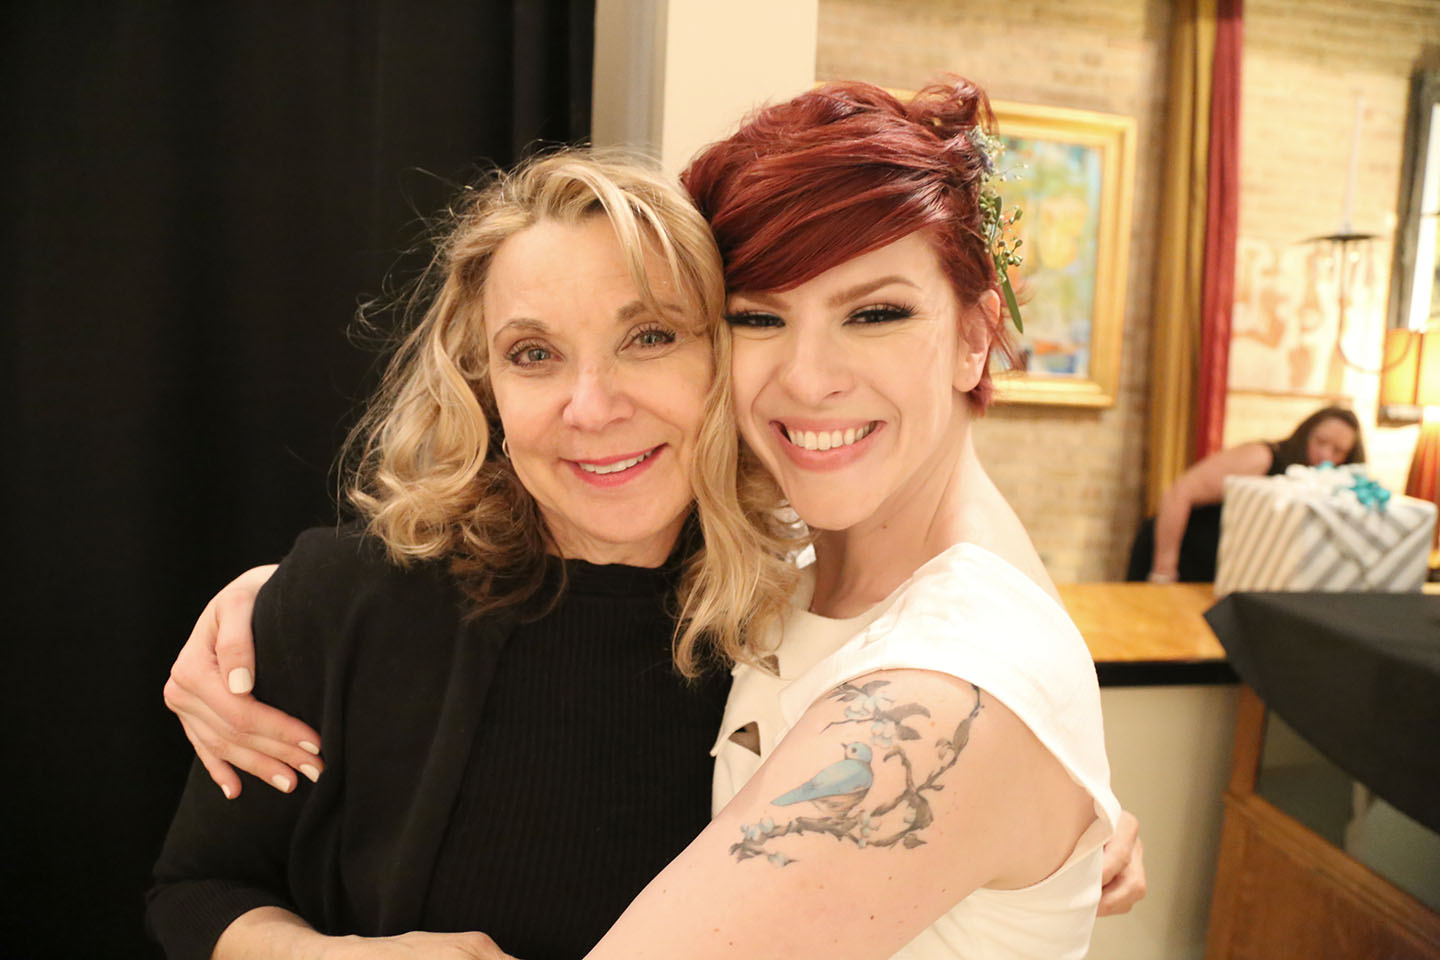 Barb Gadzik poses for a picture with her bride Julie at Mars Gallery Chicago. Photo by  Rachel Smith.